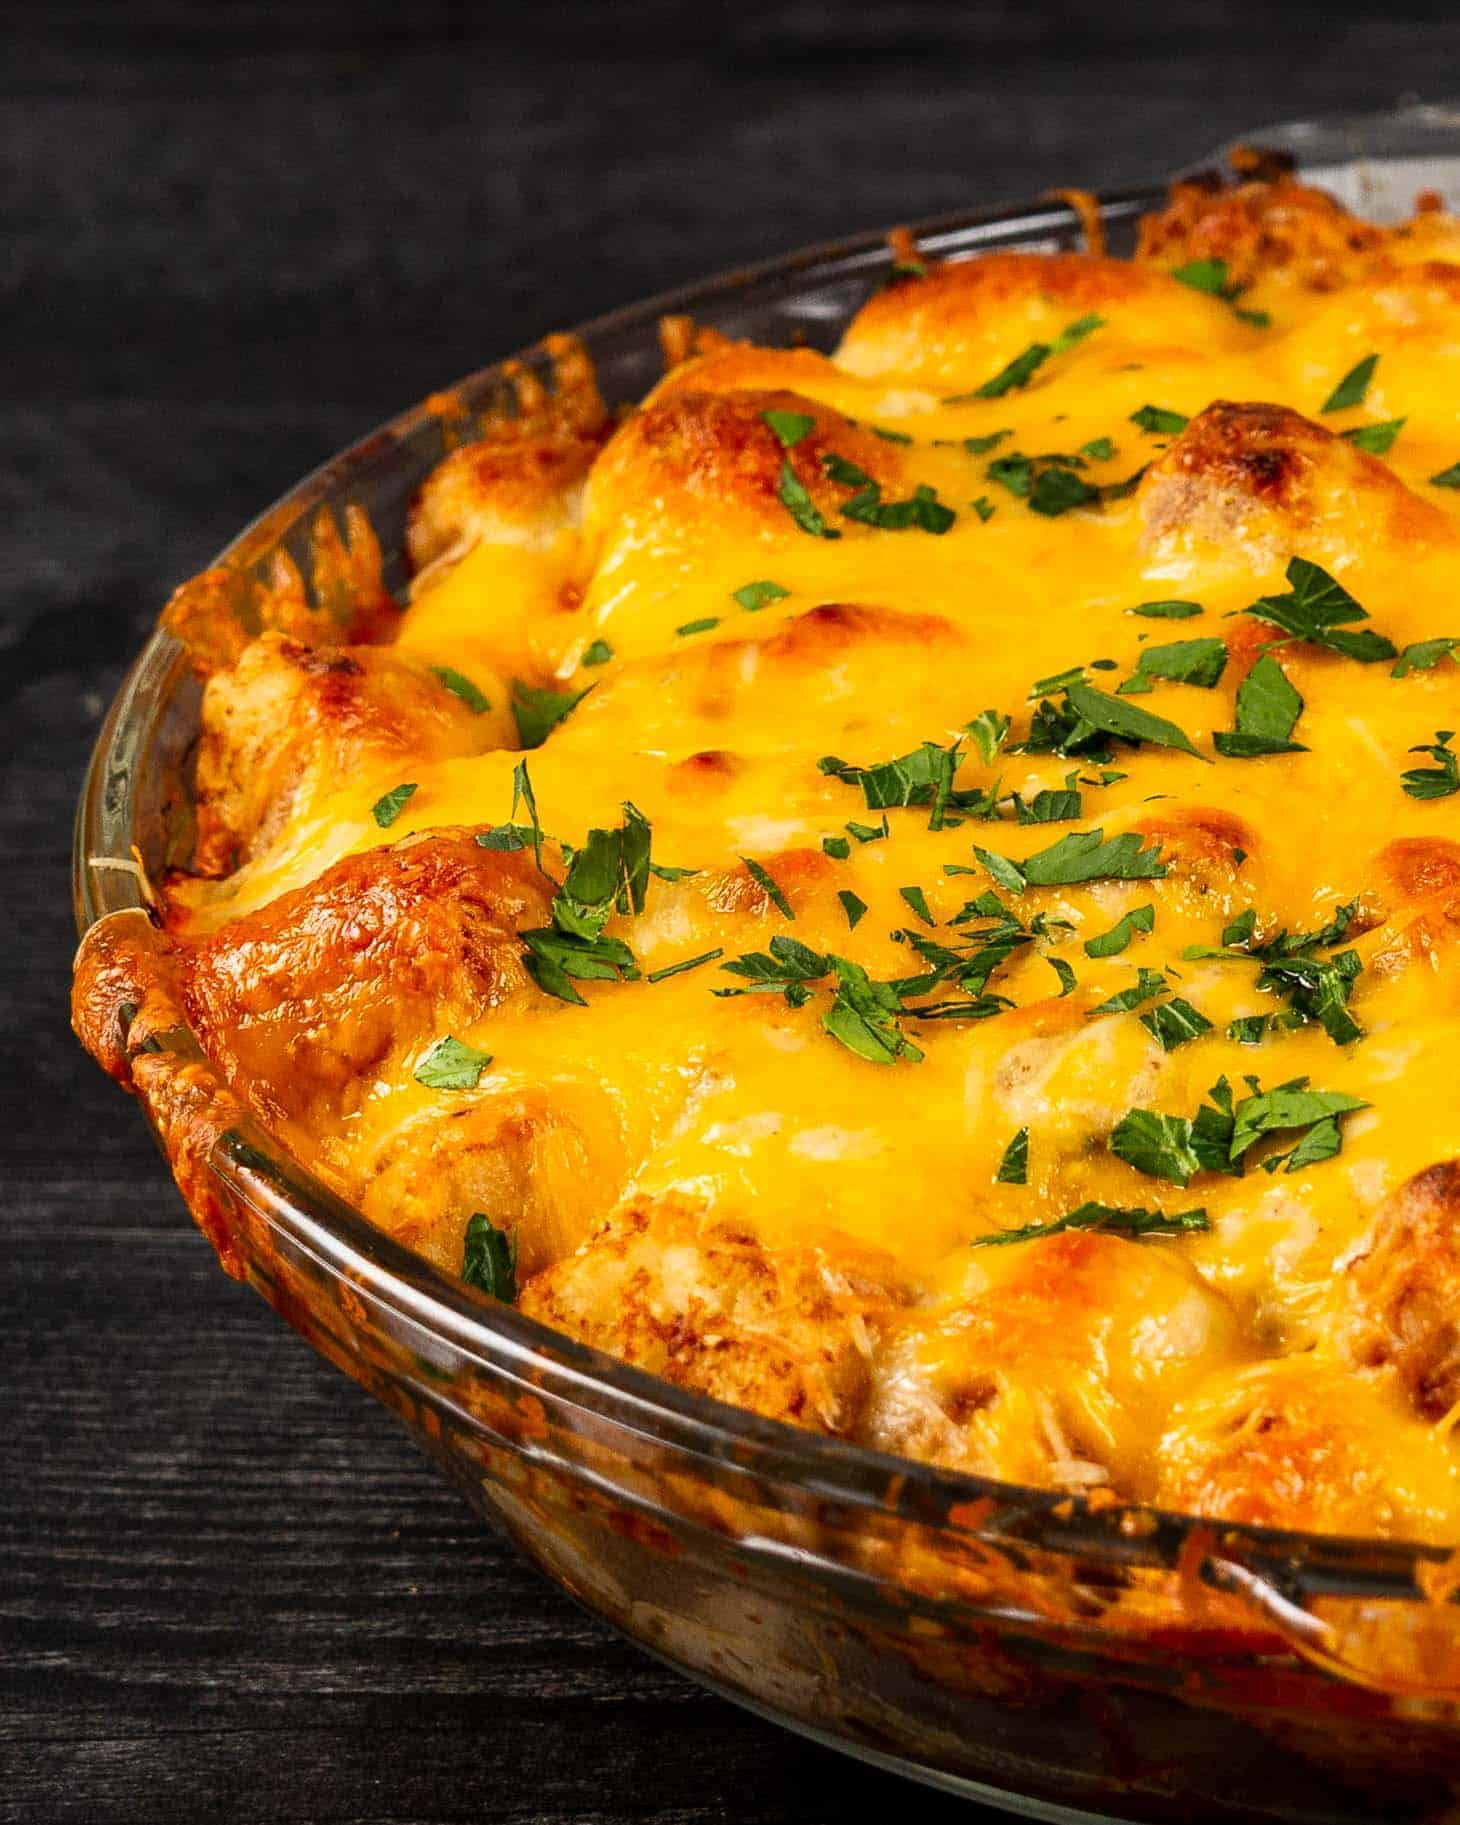 The Best Turkey and Tater Tot Casserole